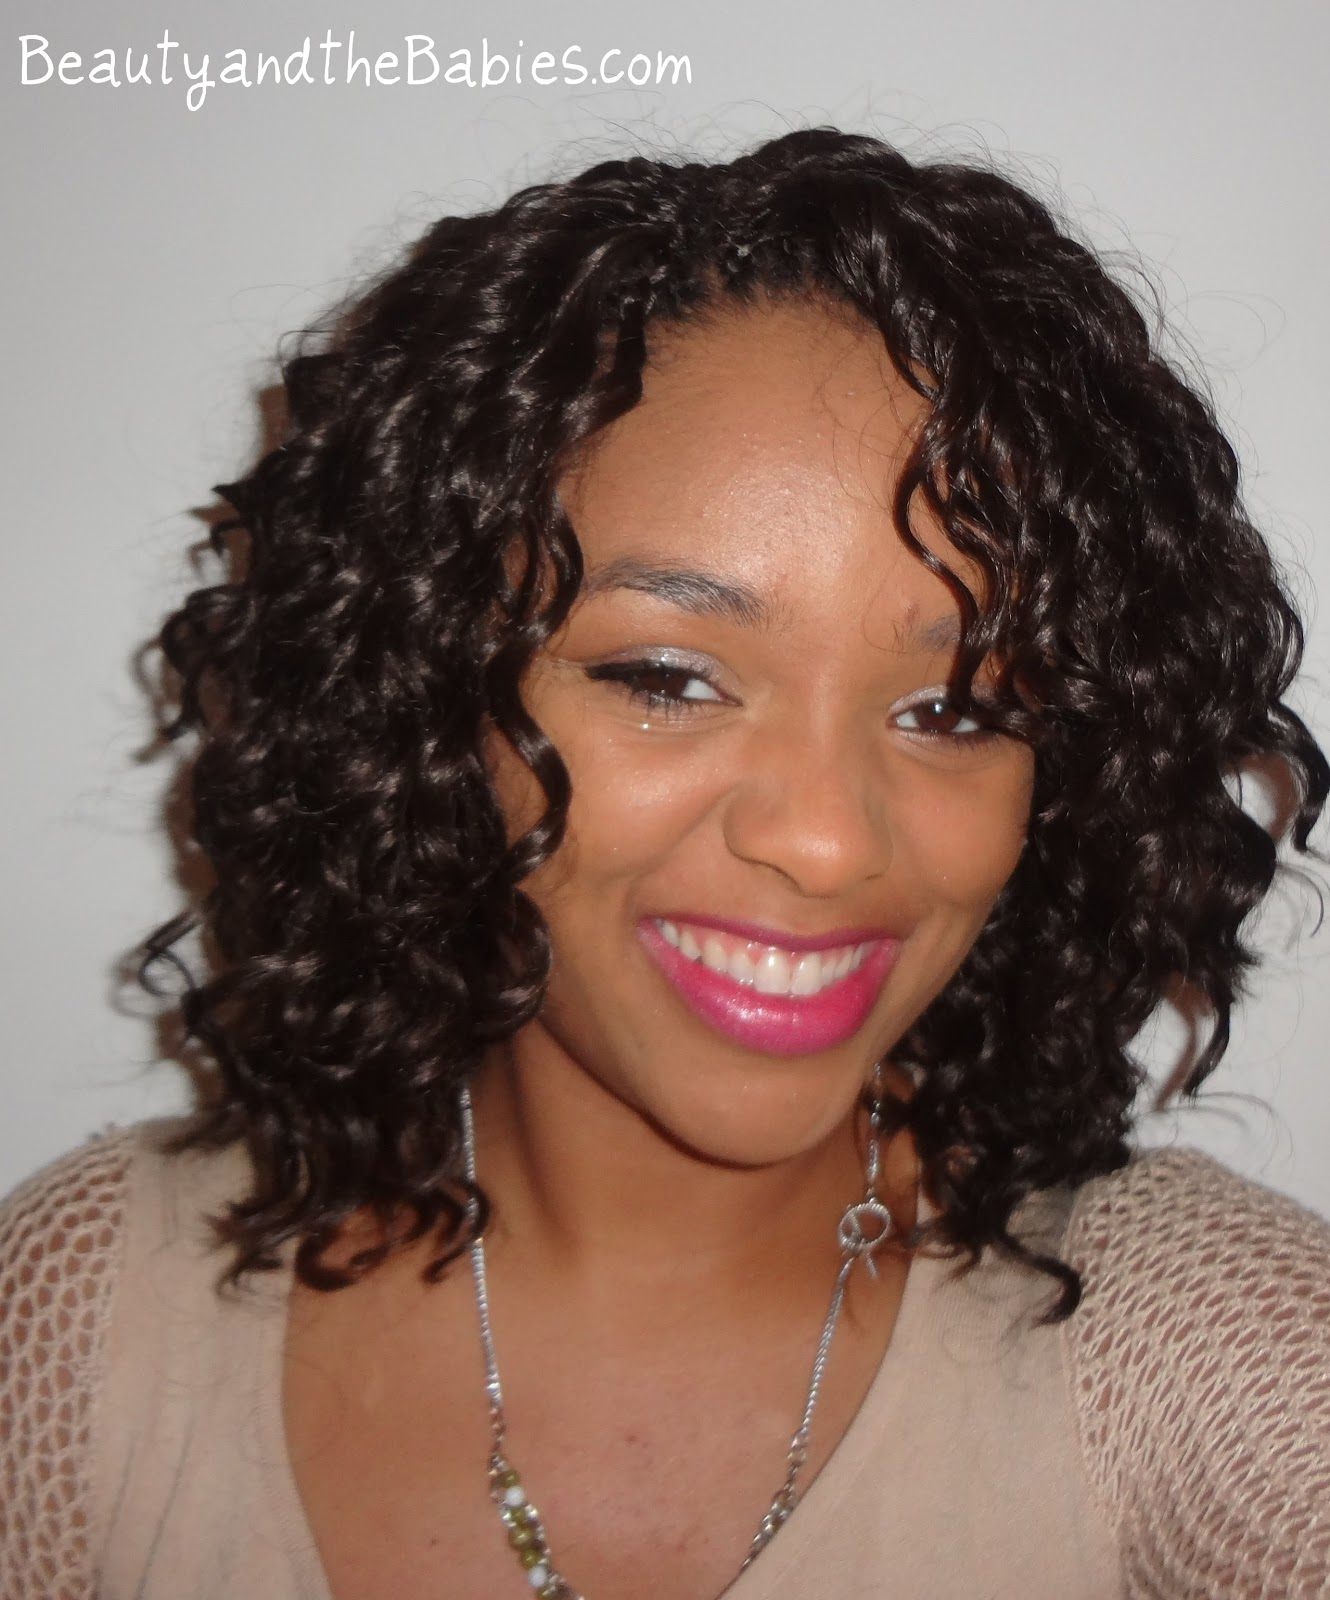 Crochet Braids Using Human Hair : Crochet Braids With Human Hair blackhairstylecuts.com